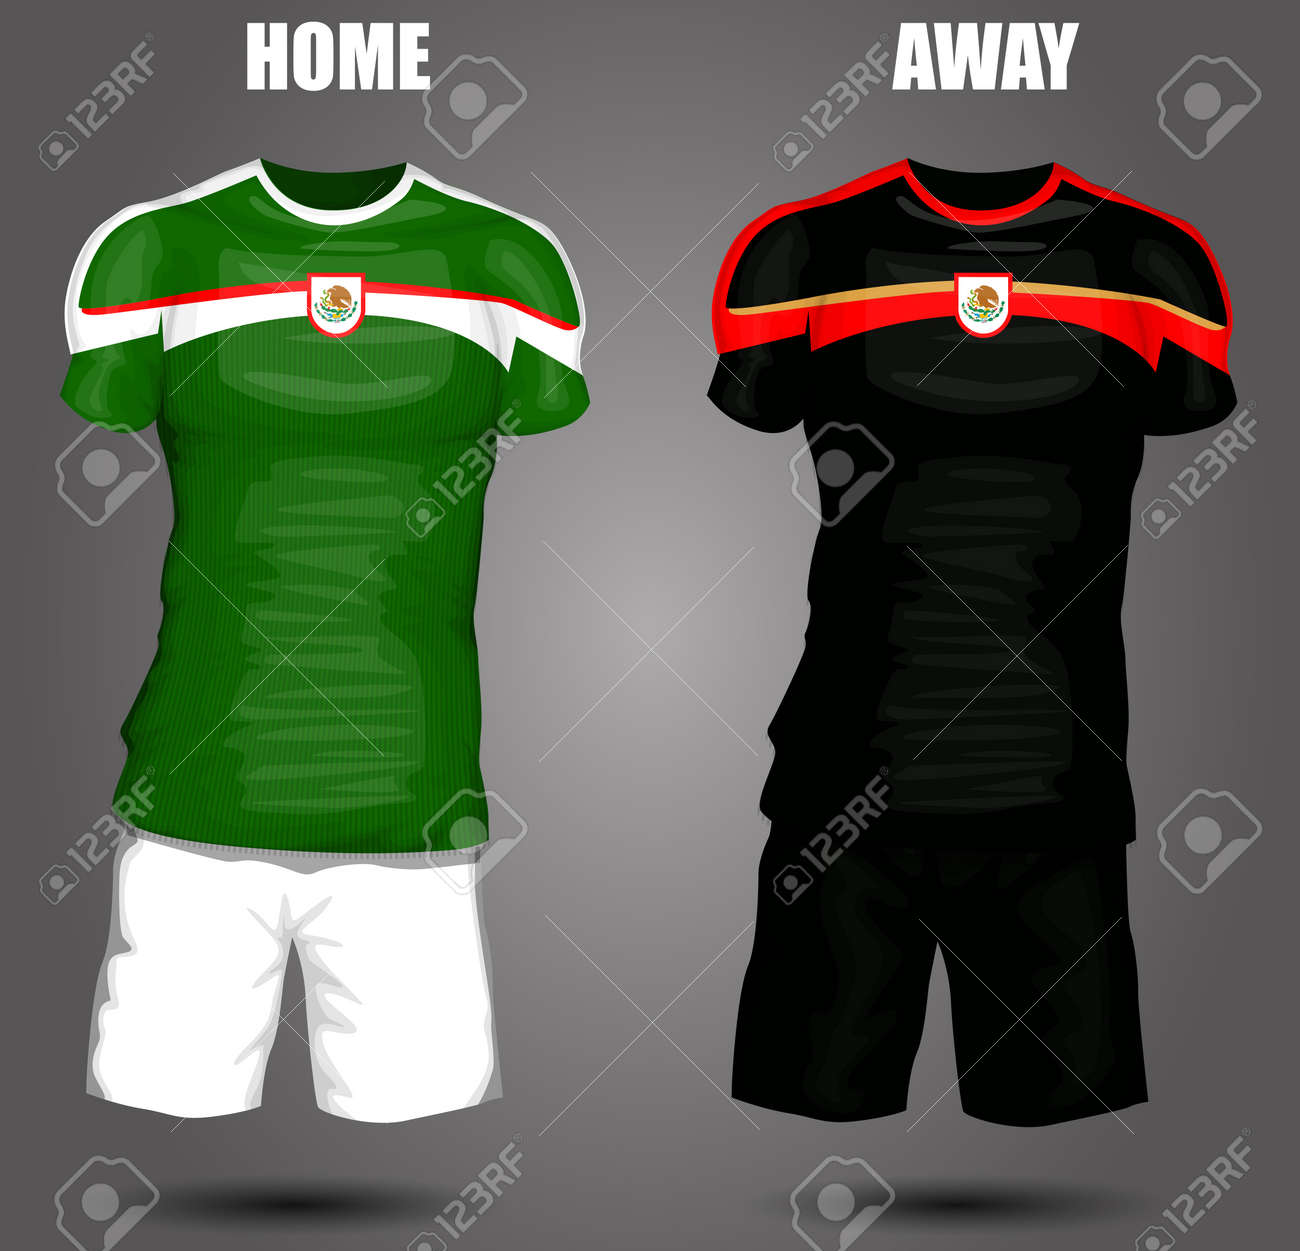 a5ea53c4591 Mexico Soccer Jersey Royalty Free Cliparts, Vectors, And Stock ...